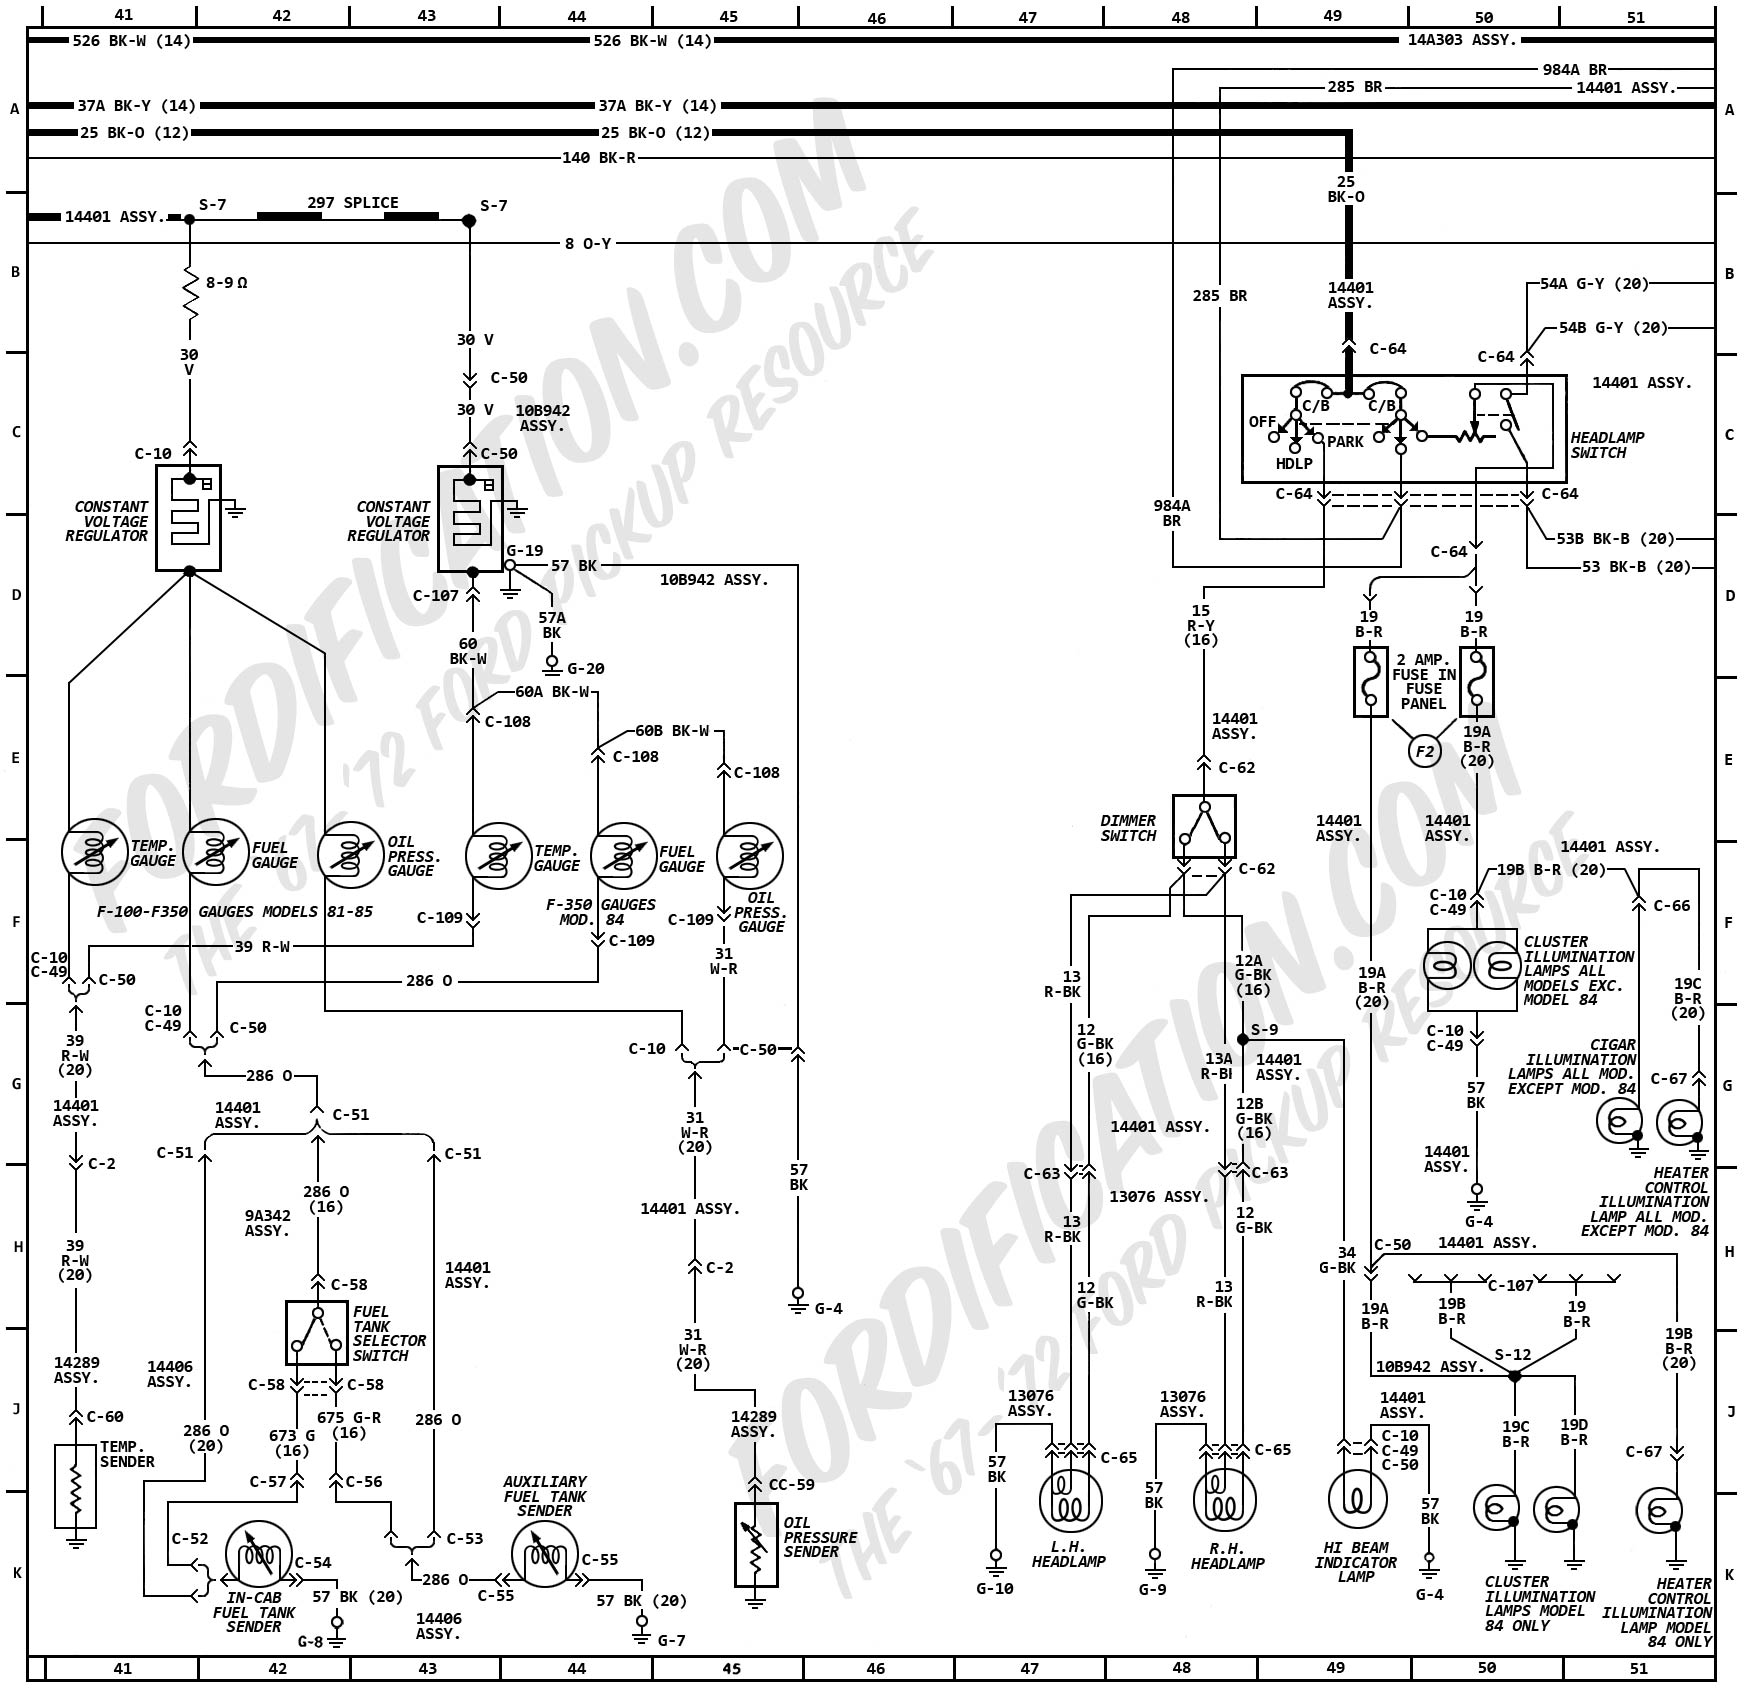 wiring diagram ford 4tqp0ford1501988ford